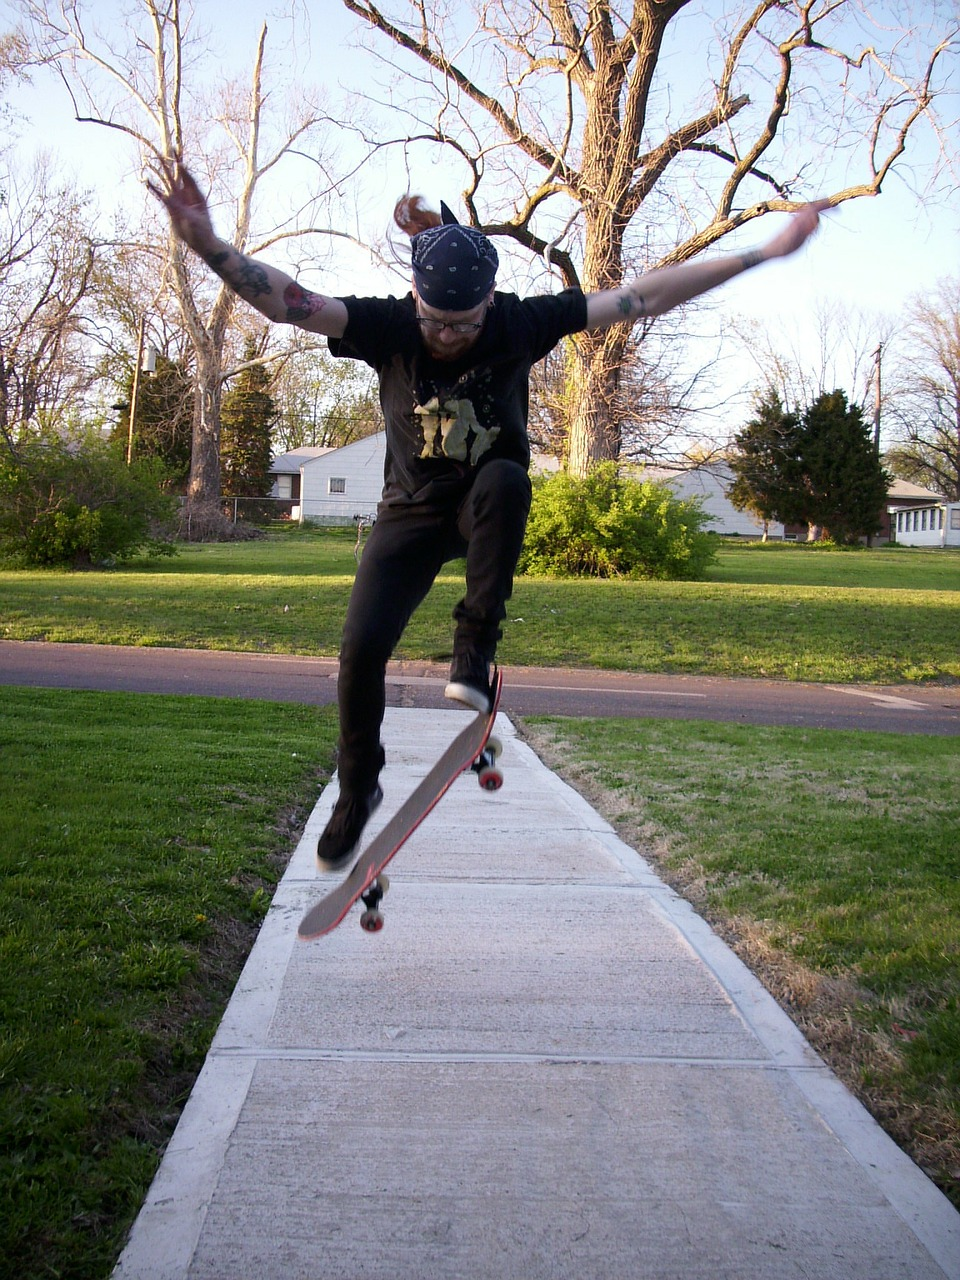 skateboarding skateboarder sidewalk free photo